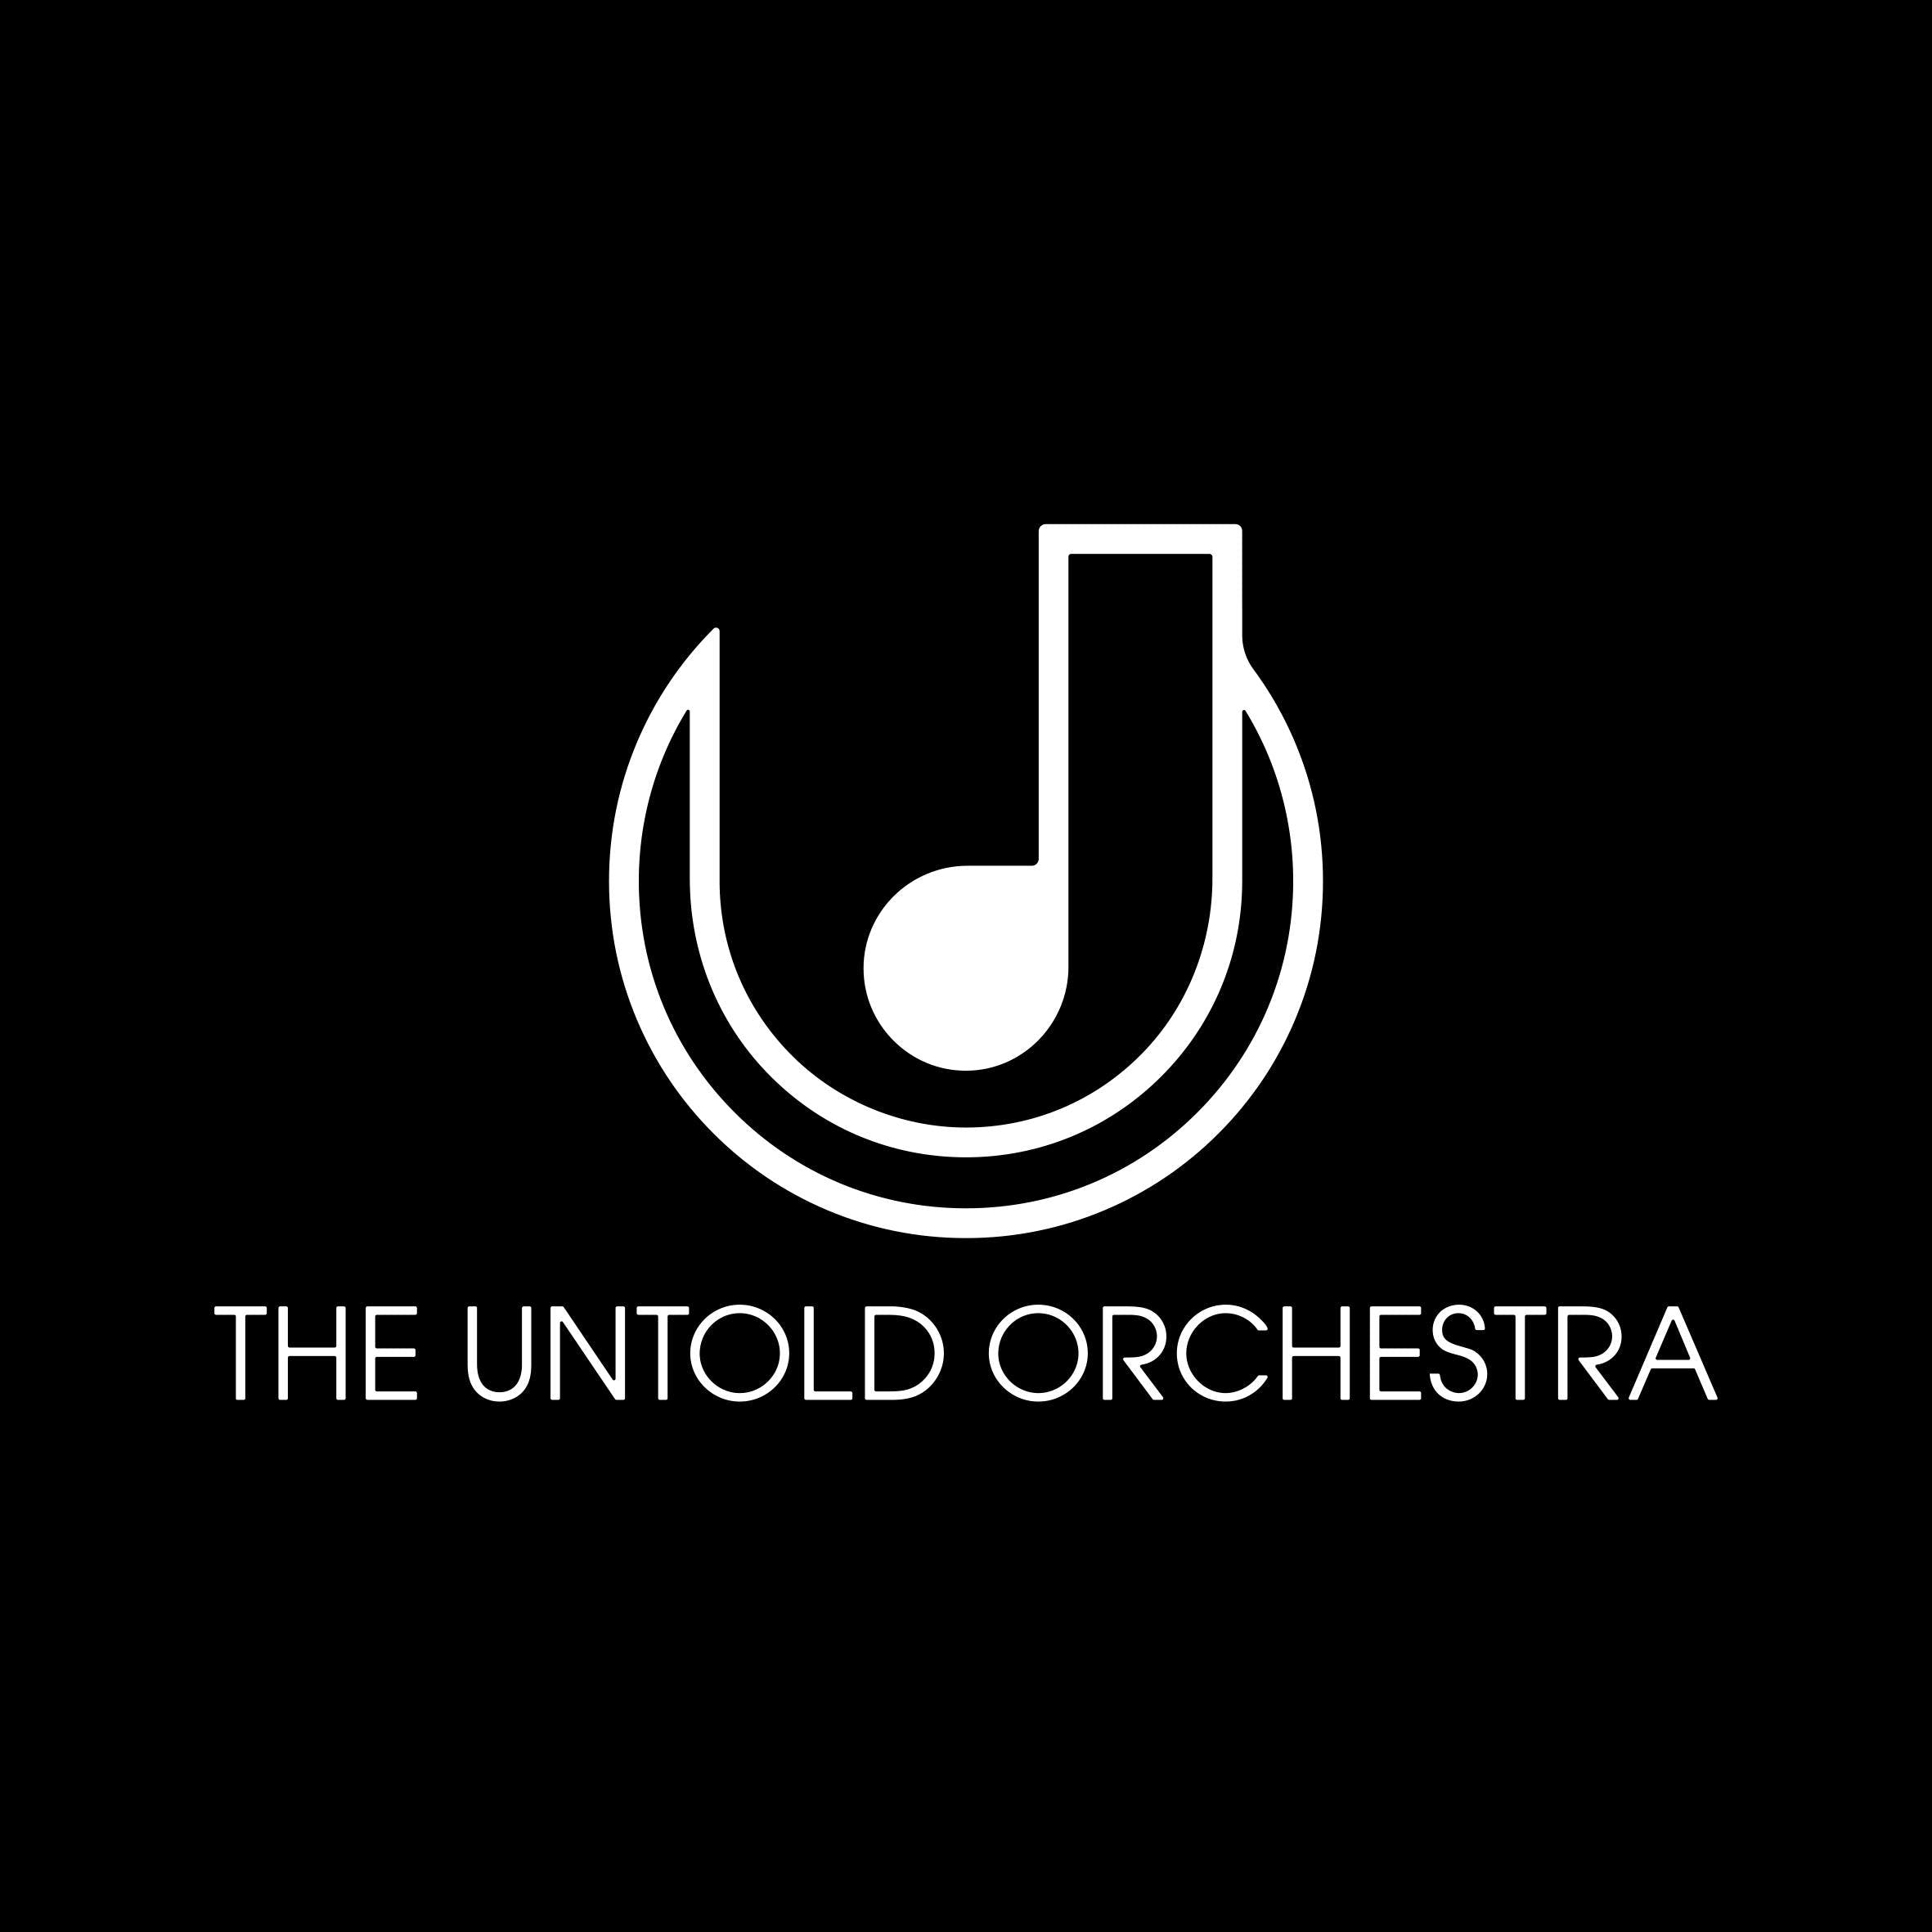 BACK TO MEIN // UNTOLD ORCHESTRA